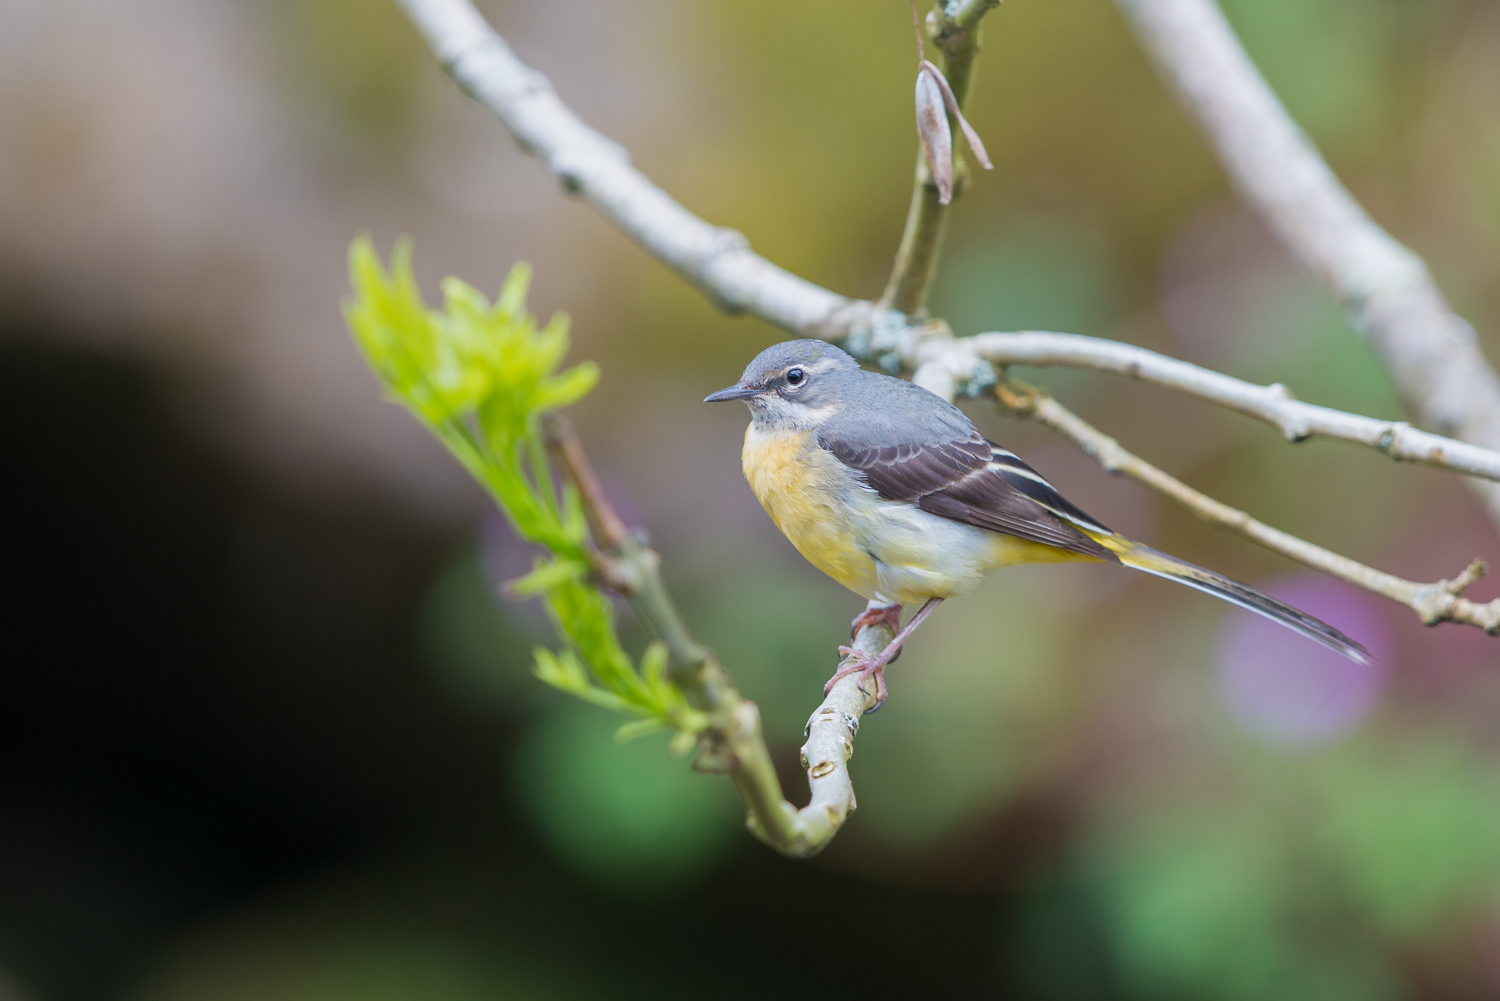 Grey Wagtail, UK birds, wildlife